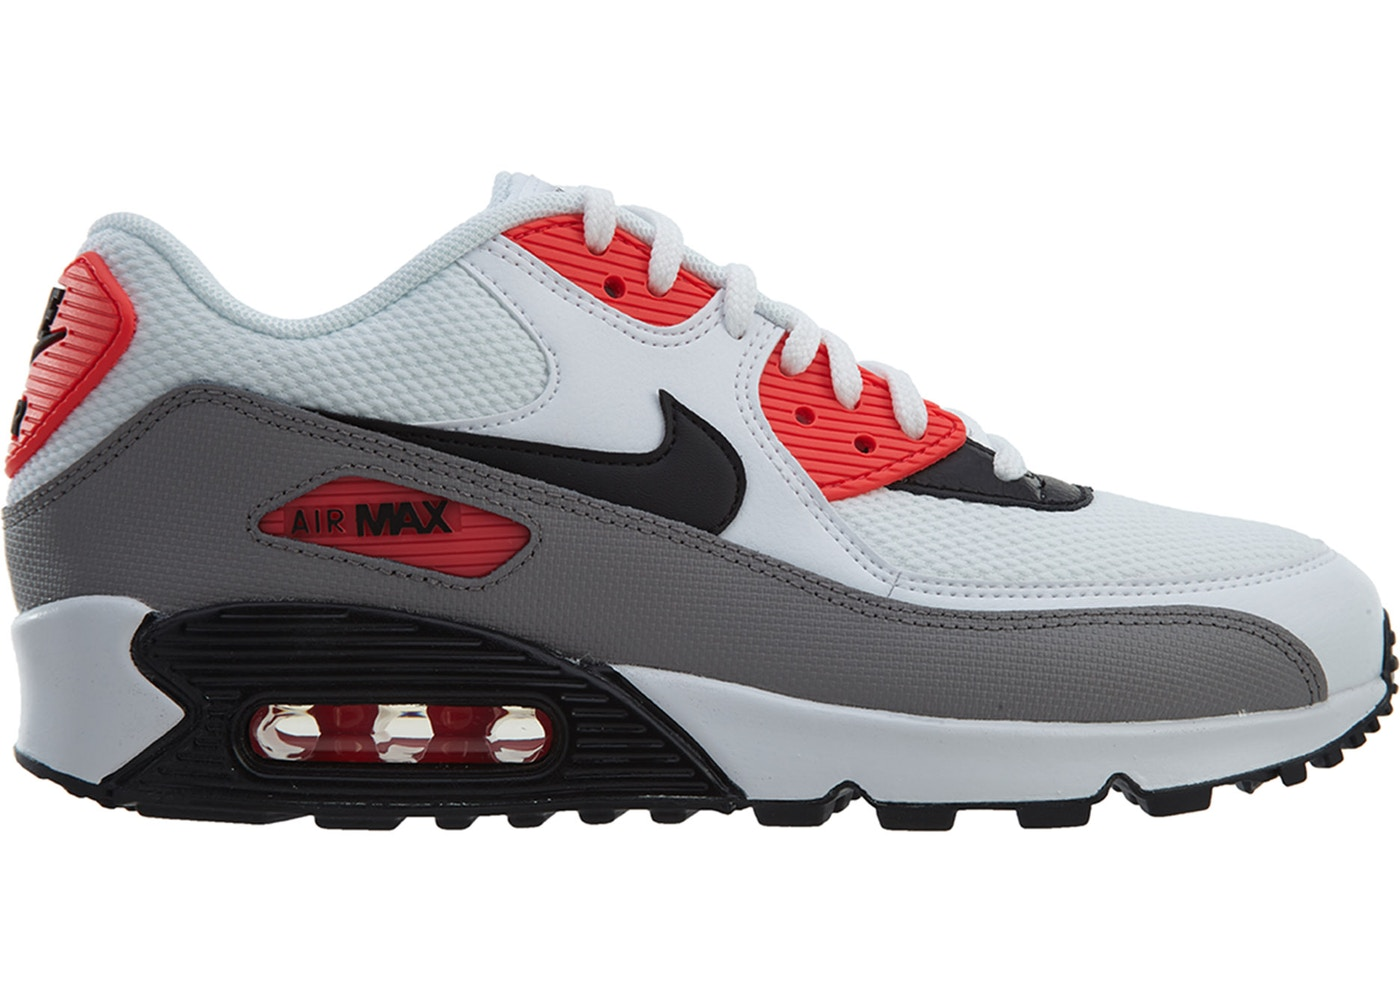 6df1df2f9d Nike Air Max 90 Shoes - Lowest Ask